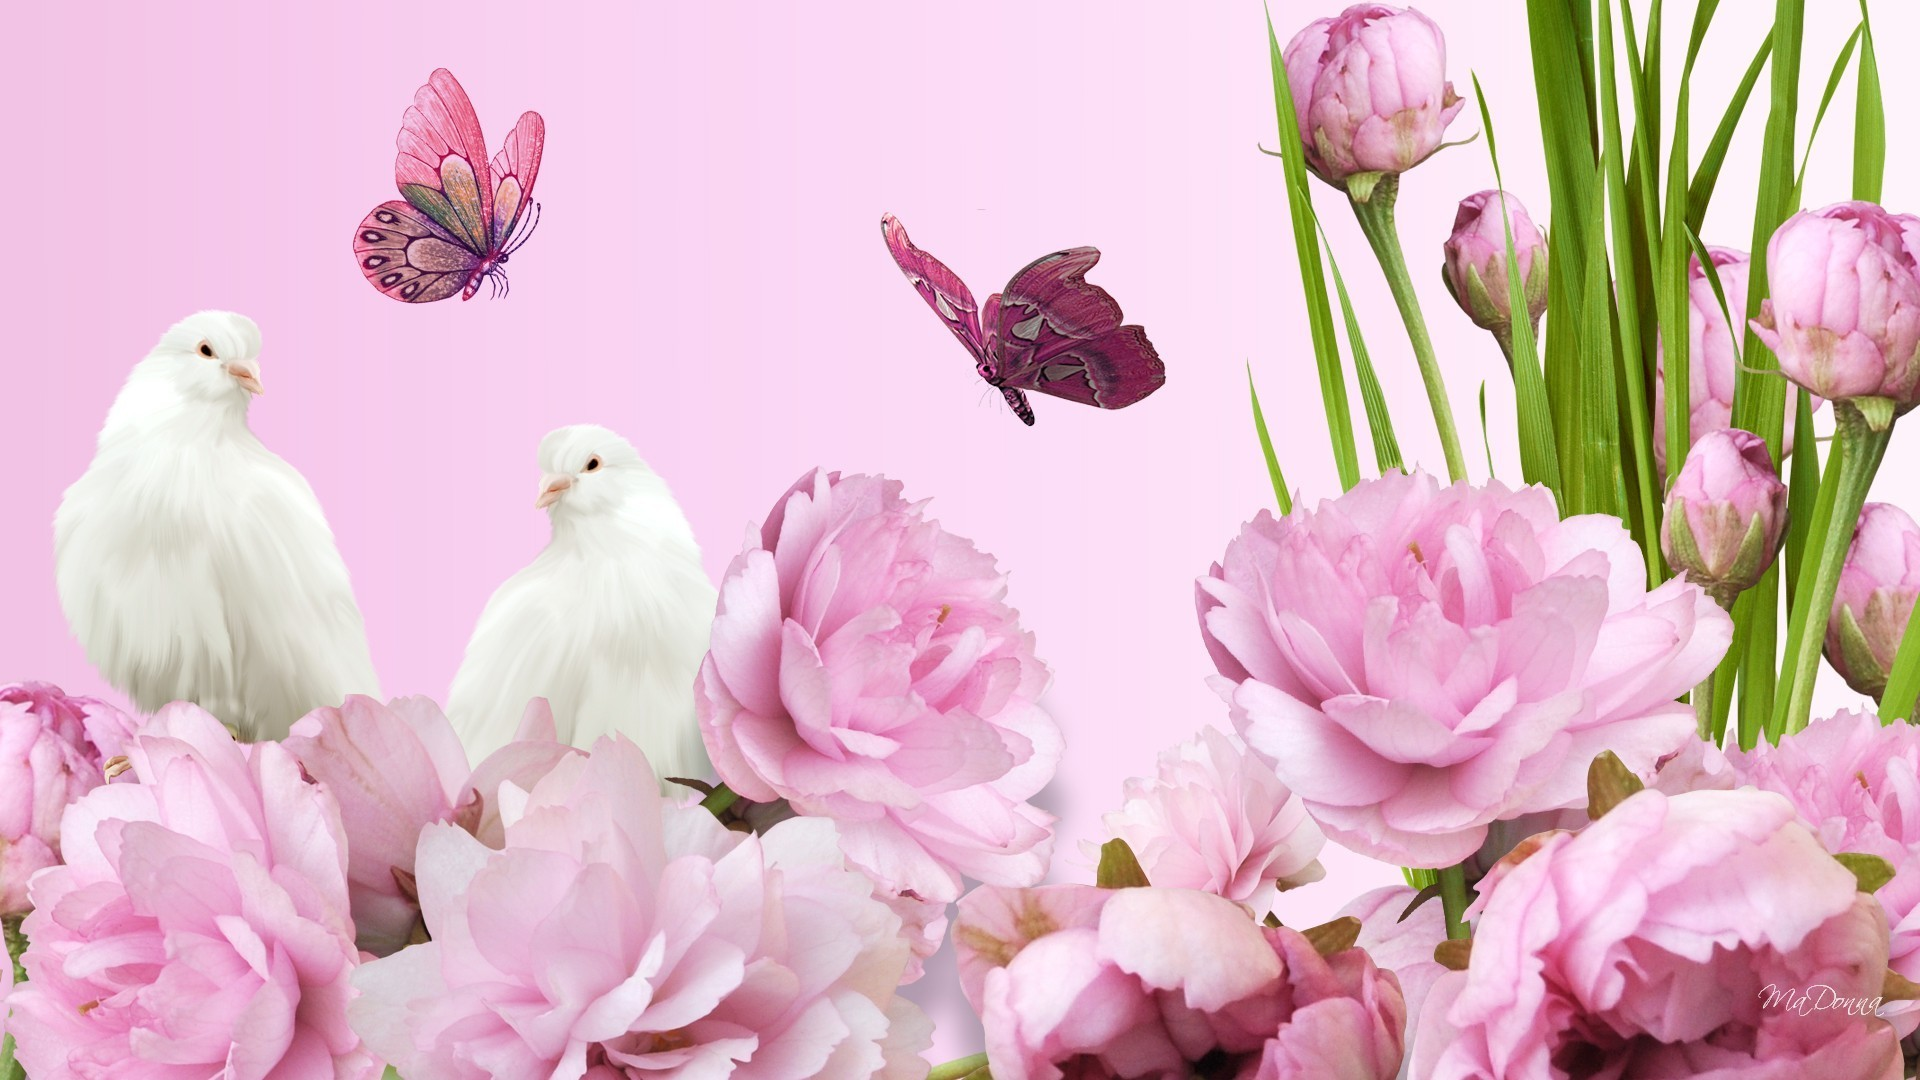 Peony Tag – Peaceful Flowers Doves Bright Spring Peonies Pink Lush Summer  Pigeon Fragrant Graceful Aroma